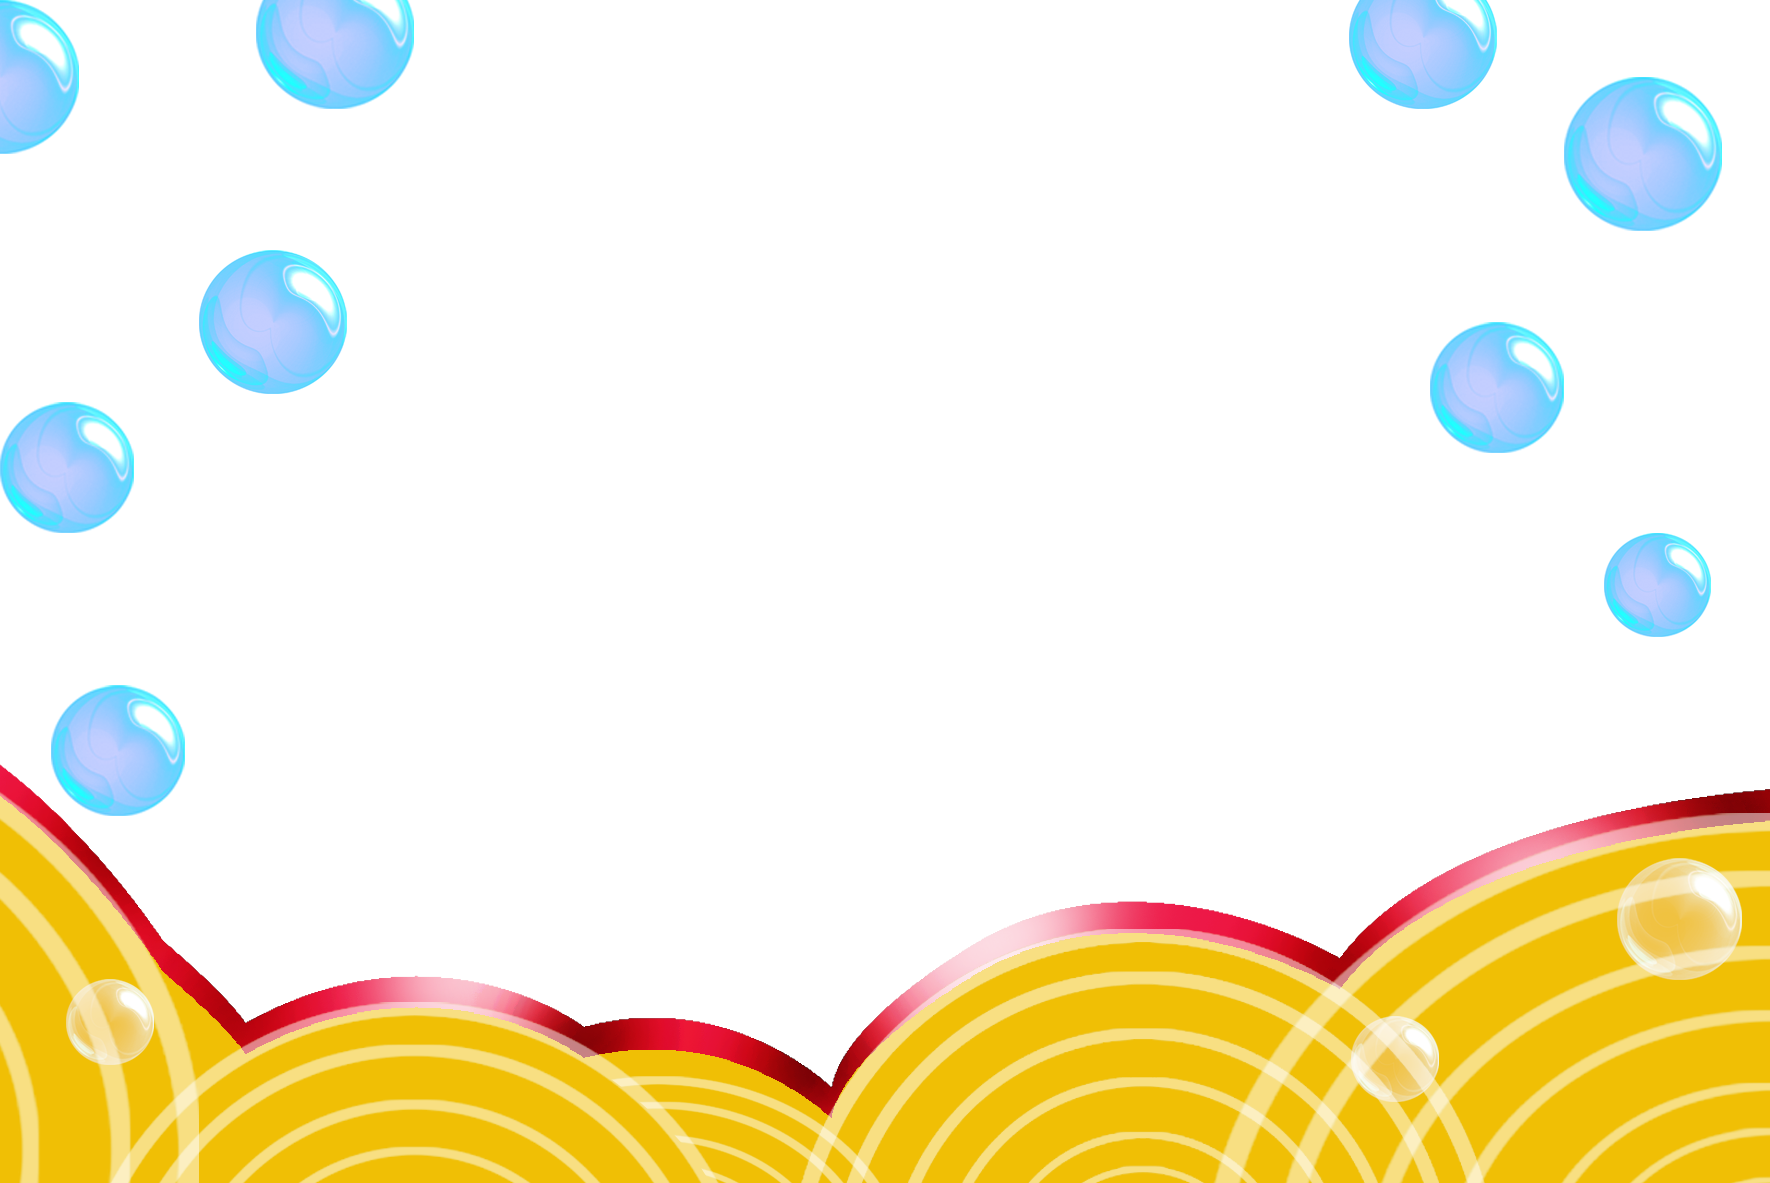 Bubble background png. Yellow graphic design border